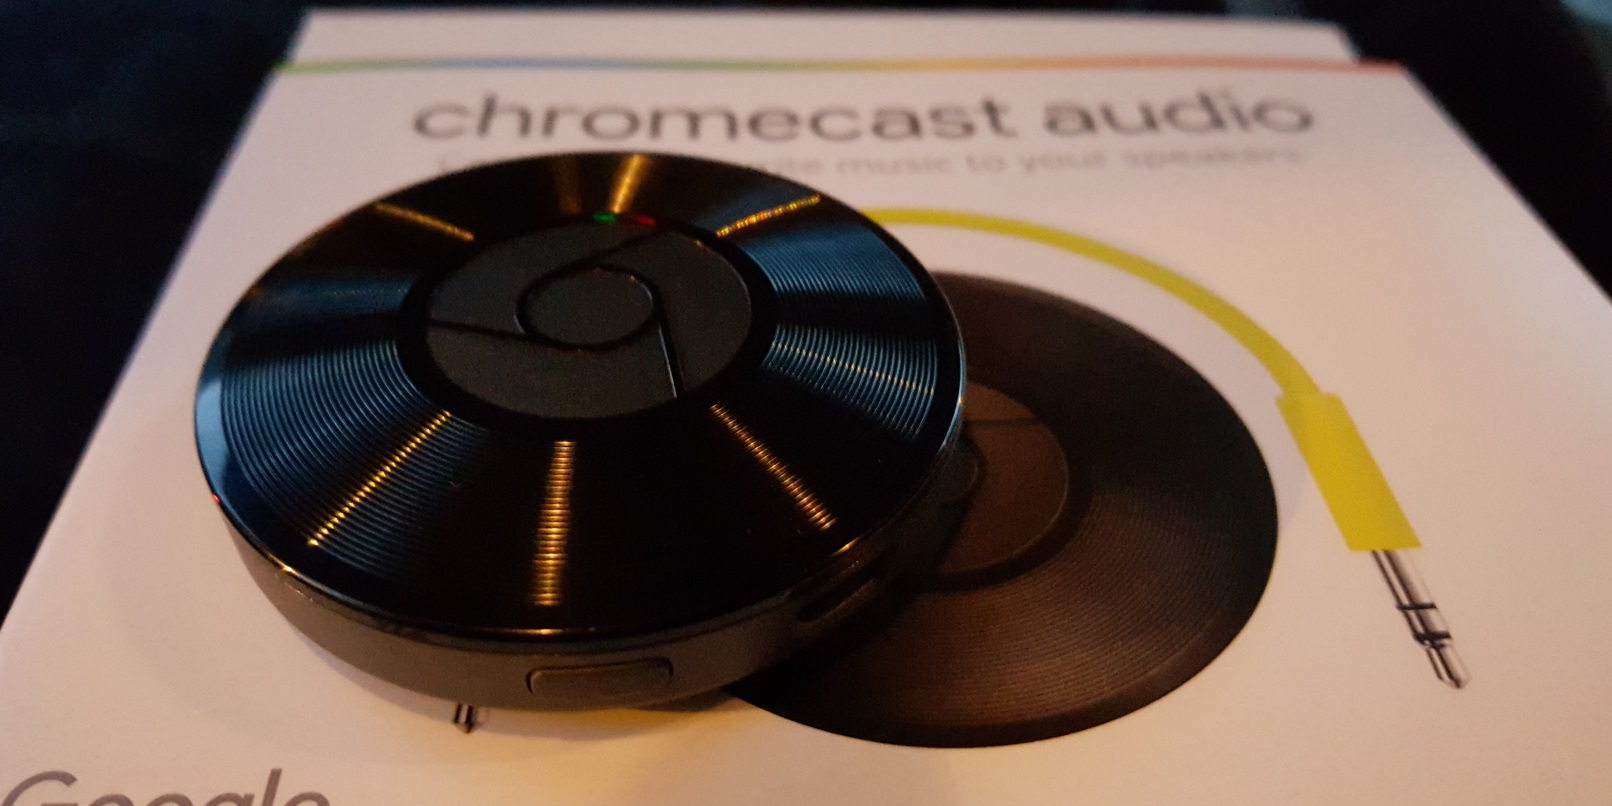 Hands-on with Google's new Chromecast Audio $35 streaming dongle - The Next Web